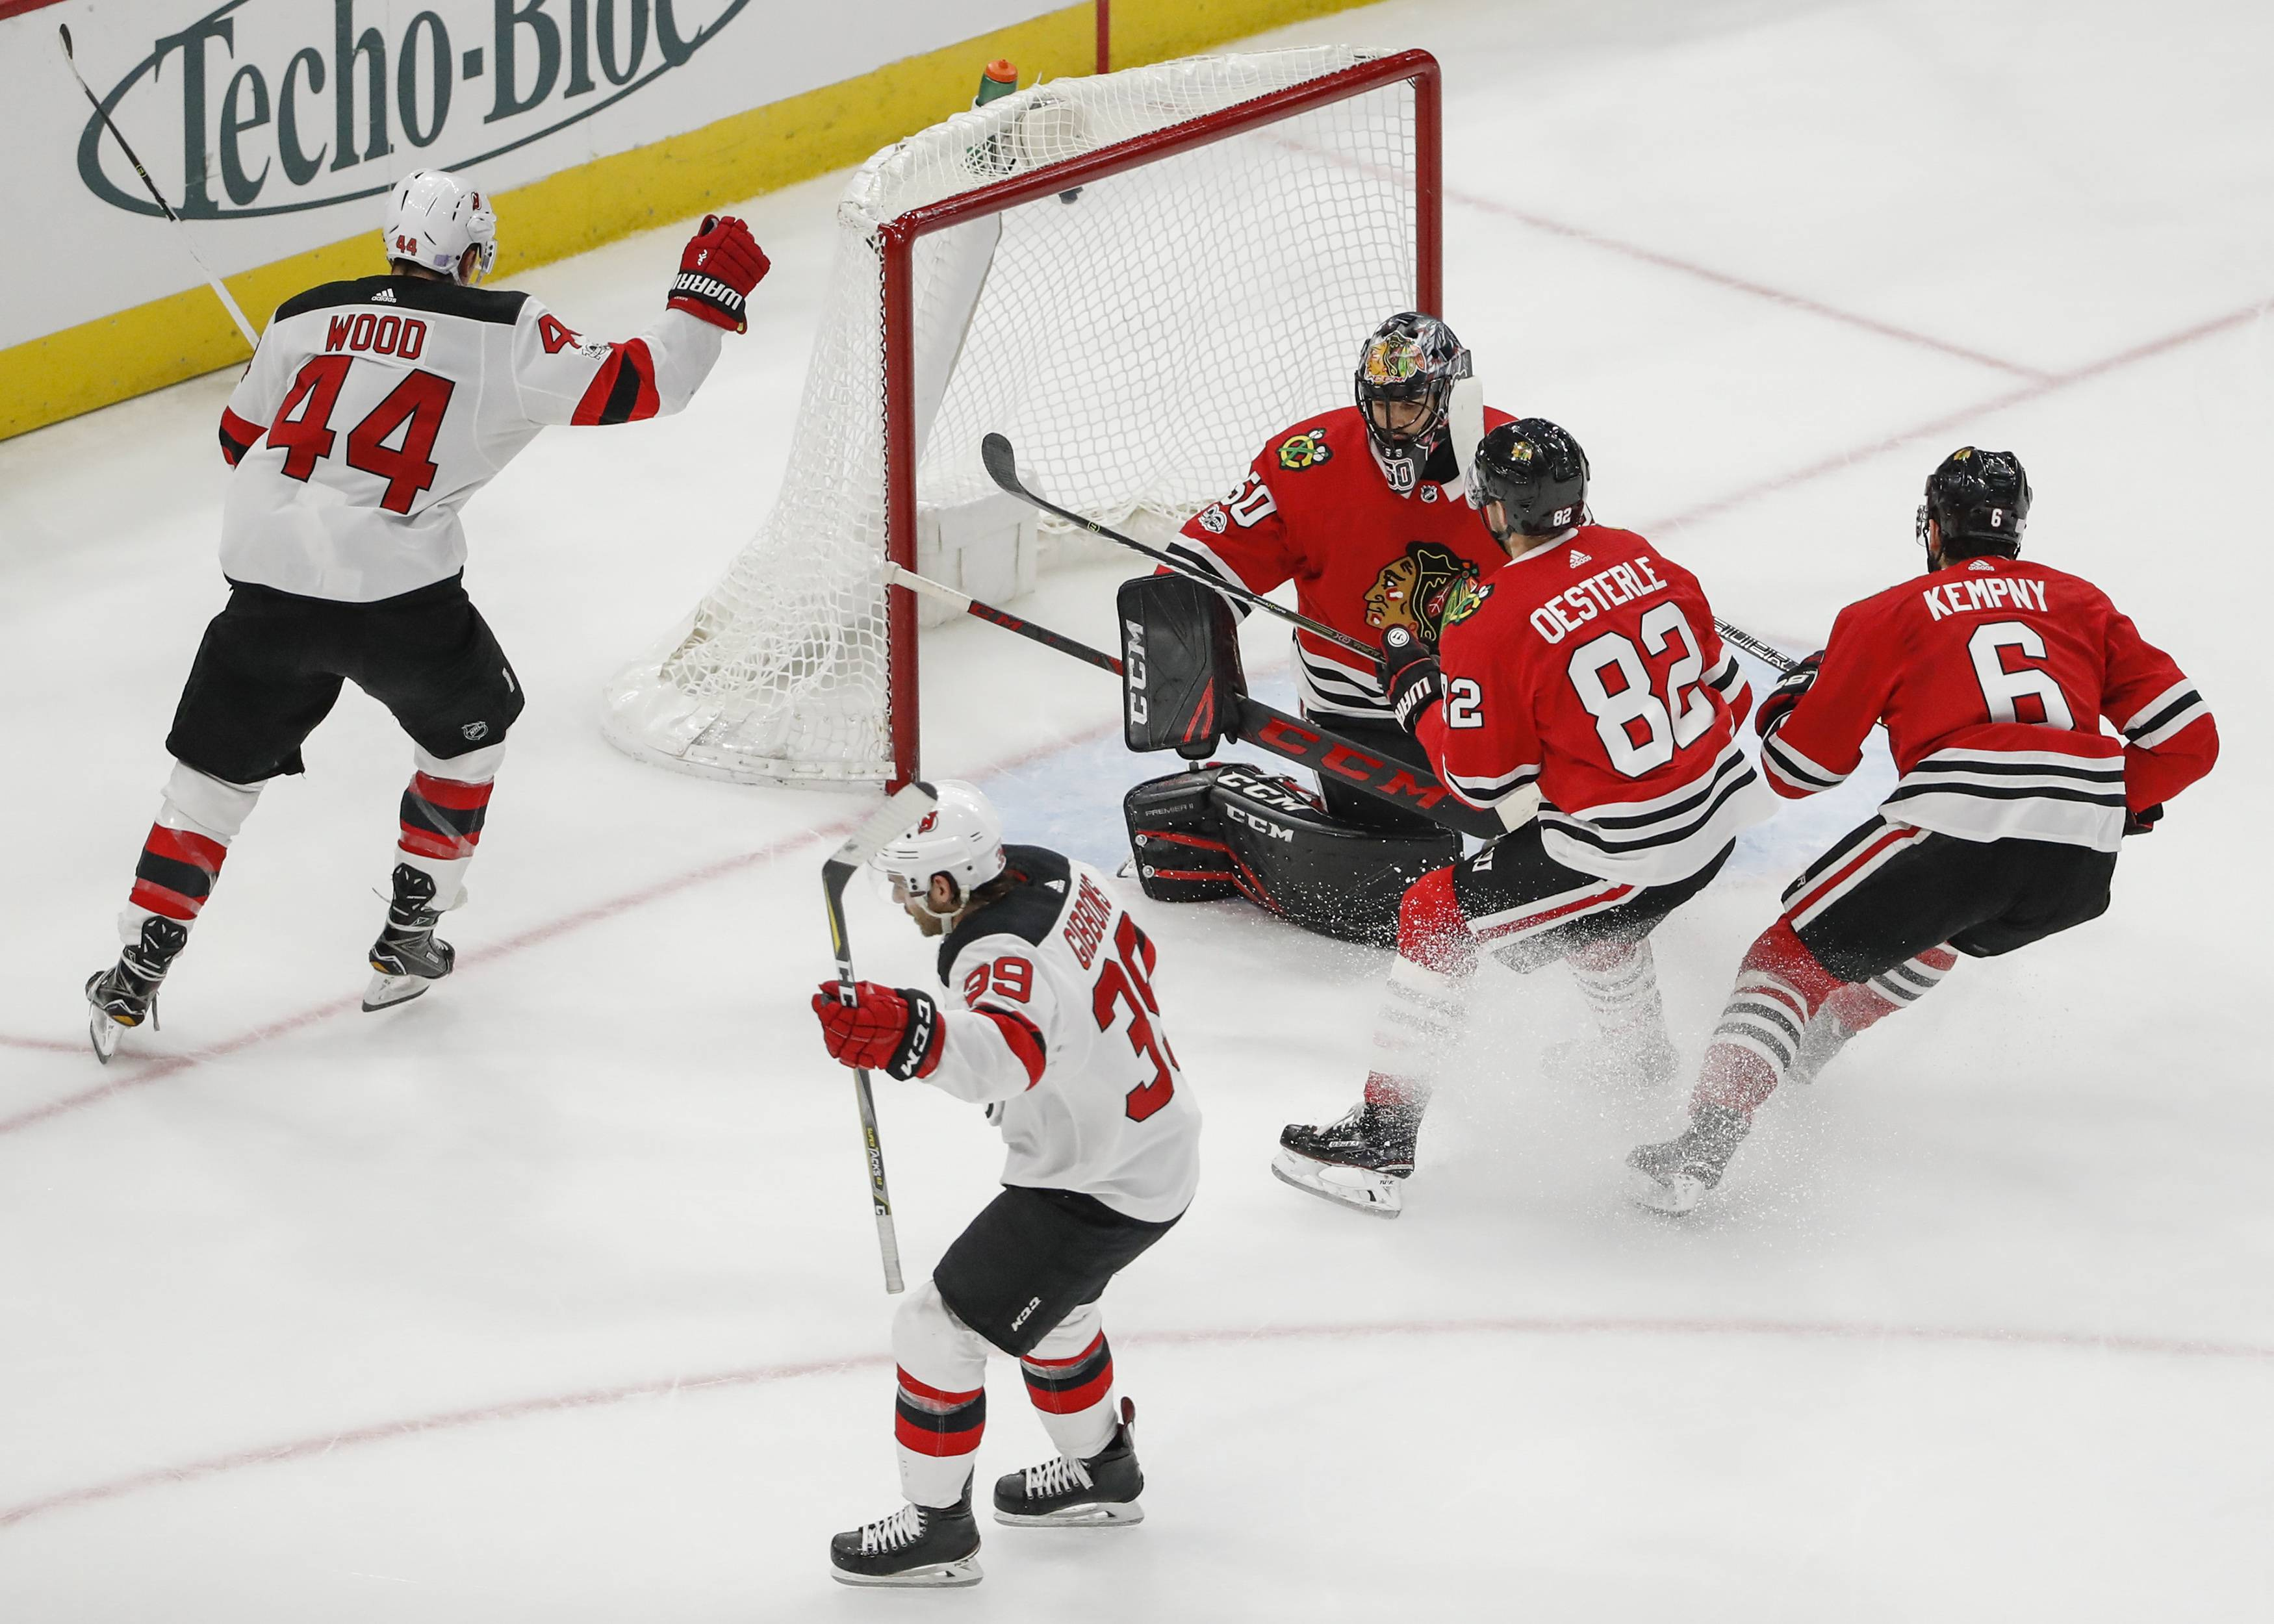 New Jersey Devils left wing Brian Gibbons (39) reacts after scoring against Chicago Blackhawks goalie Corey Crawford (50) during the second period of an NHL hockey game, Sunday, Nov. 12, 2017, in Chicago.